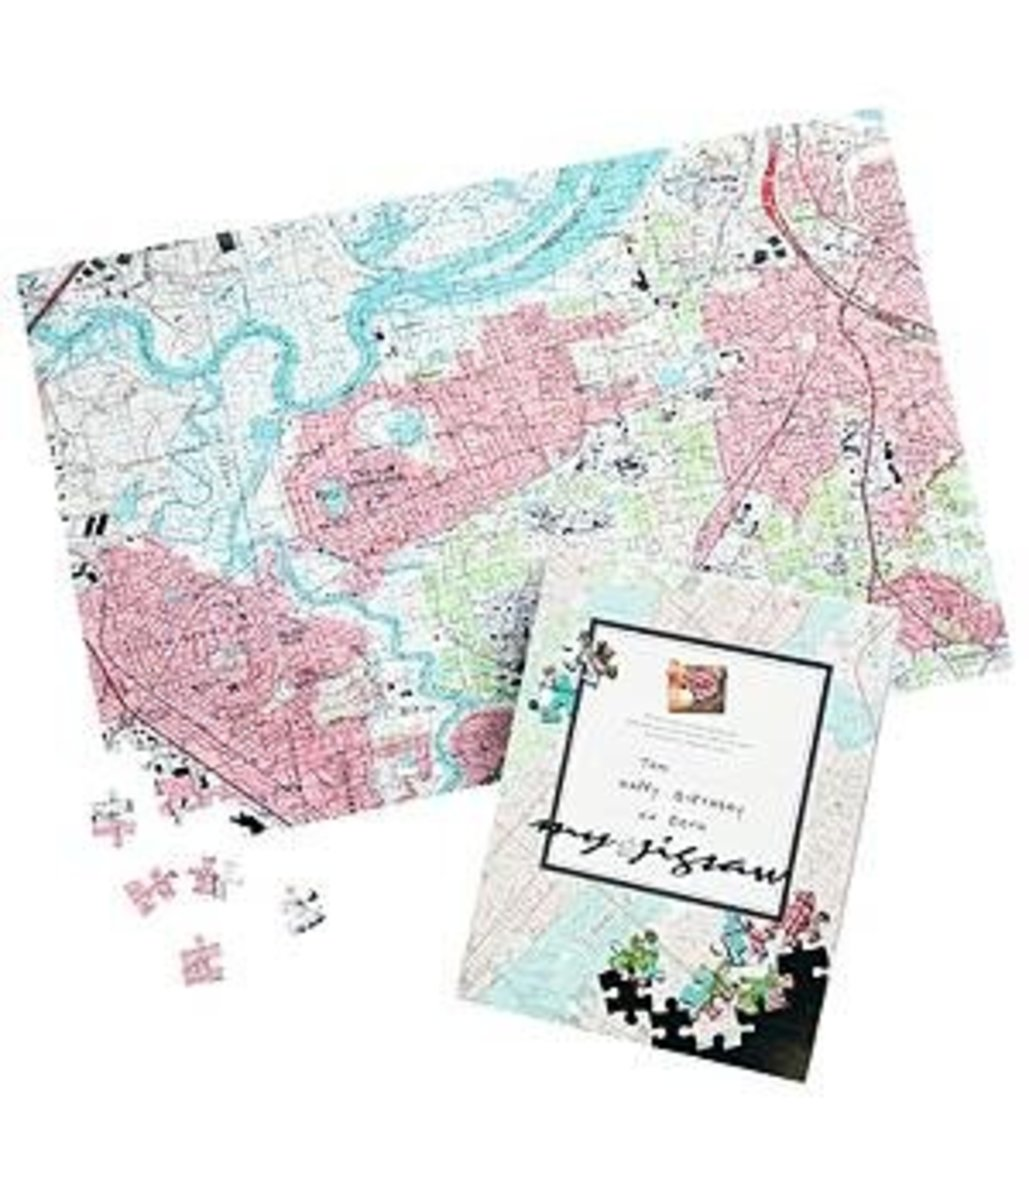 2013 Holiday Gift Guide - Hard to Shop for People - Your Home Address Puzzel - TodaysMama.com